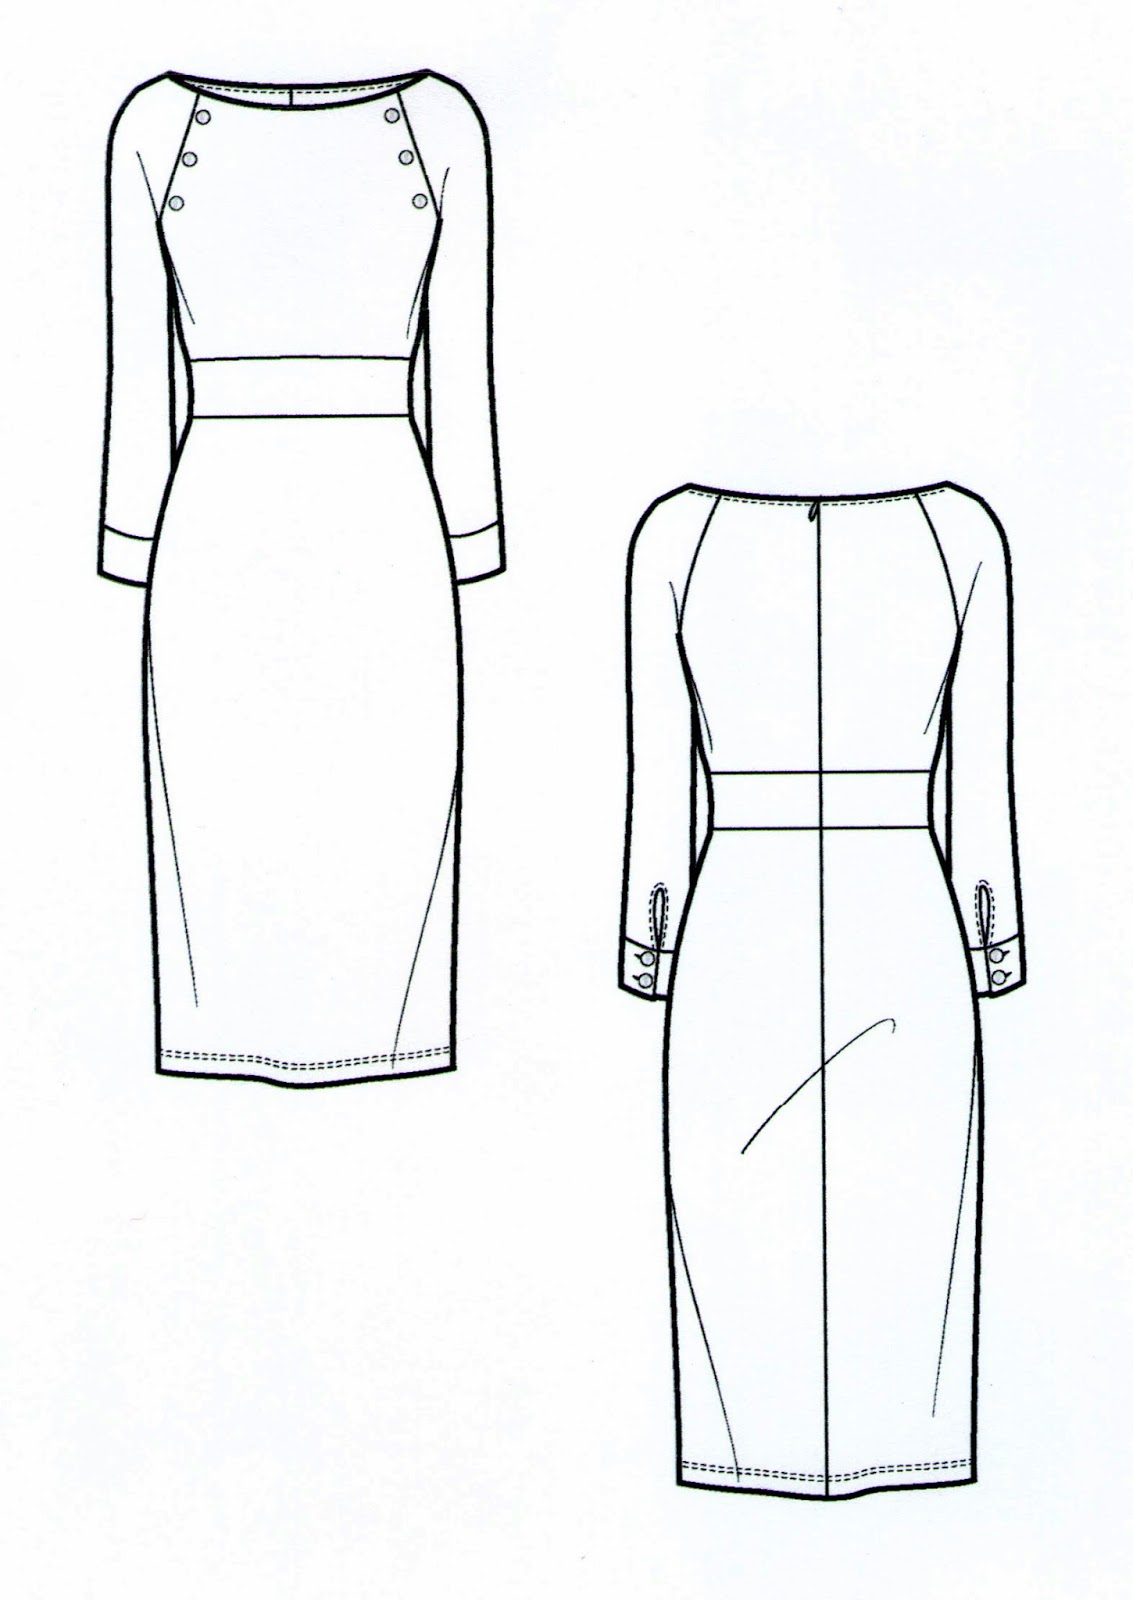 Patterns For Kilts moreover How To Design Your Wedding Dress likewise 45027 further  further Gabaritos De Cabelos. on dress design cut to skirts